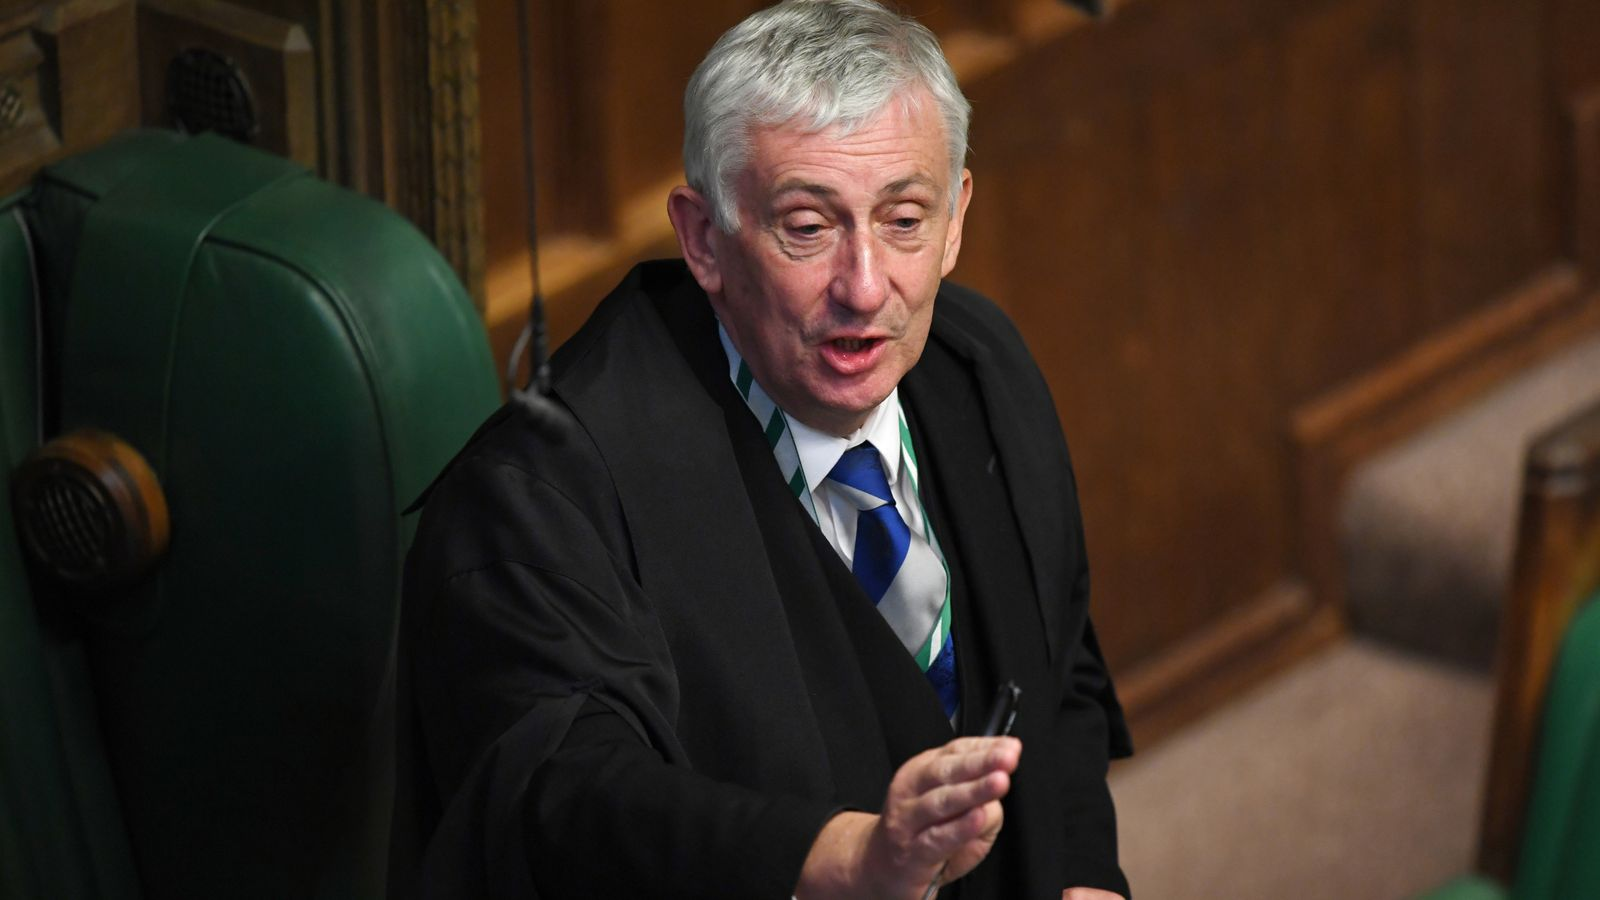 Budget 2021: Furious Speaker Sir Lindsay Hoyle suggests ministers should resign over announcements before Rishi Sunak's address to MPs